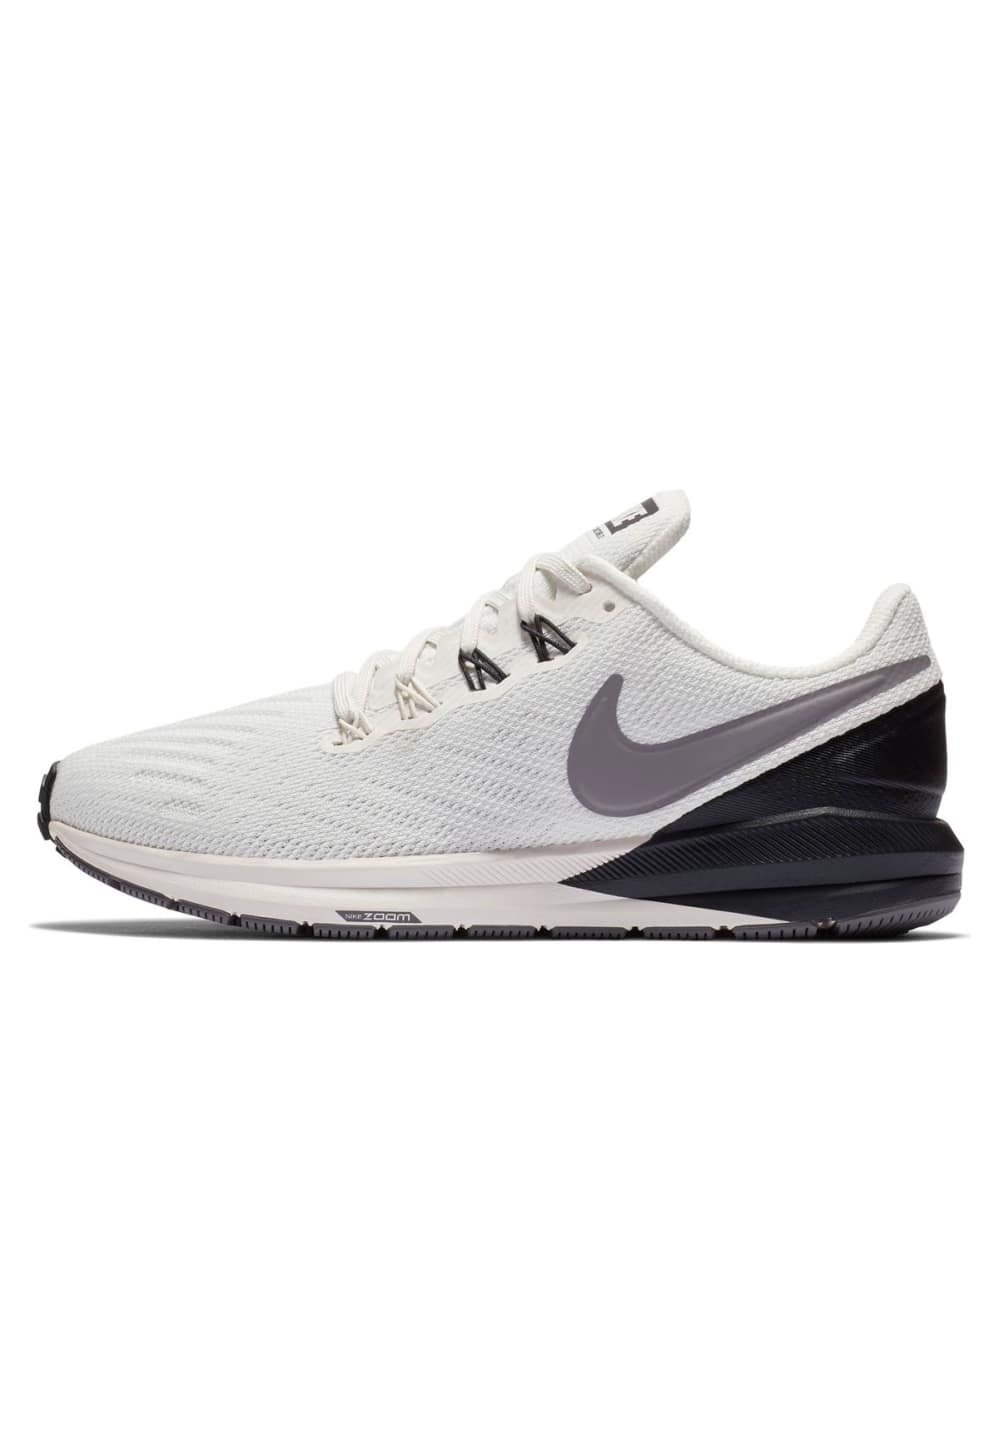 e4869853e2d8c Nike Air Zoom Structure 22 - Running shoes for Women - White | 21RUN